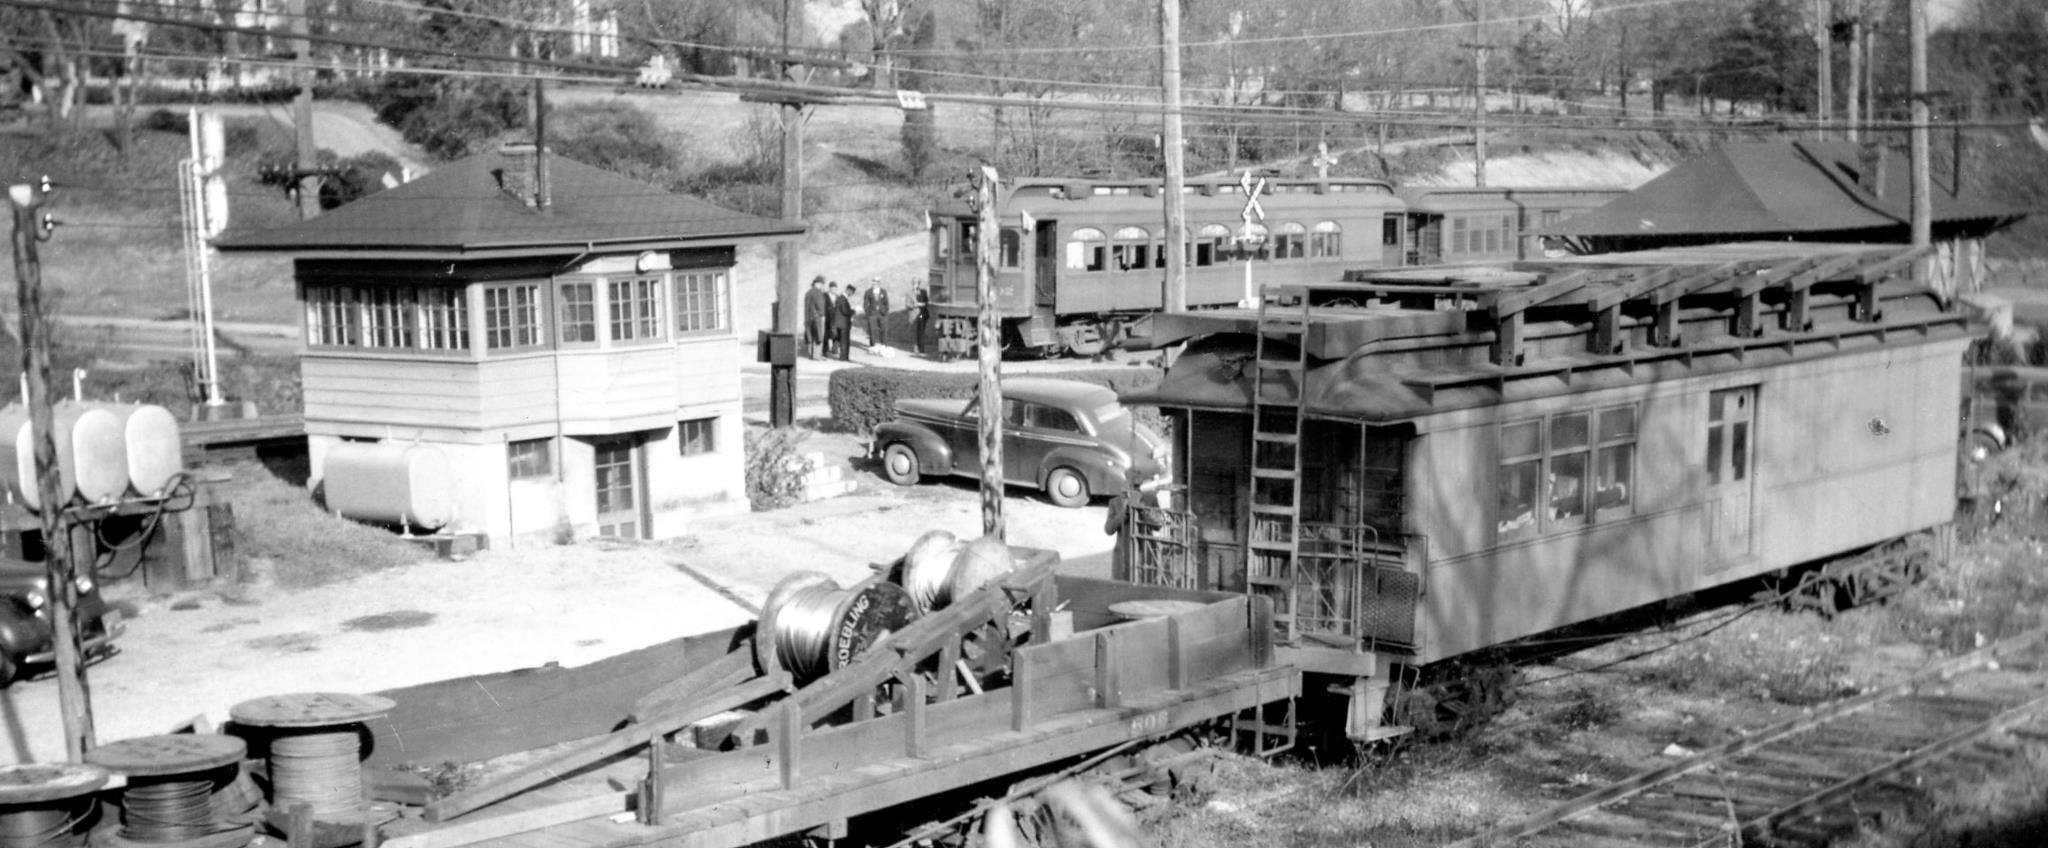 Baltimore & Annapolis Railroad Car at Linthicum Station. Date: November 16, 1941. Source: Charles Wagner.